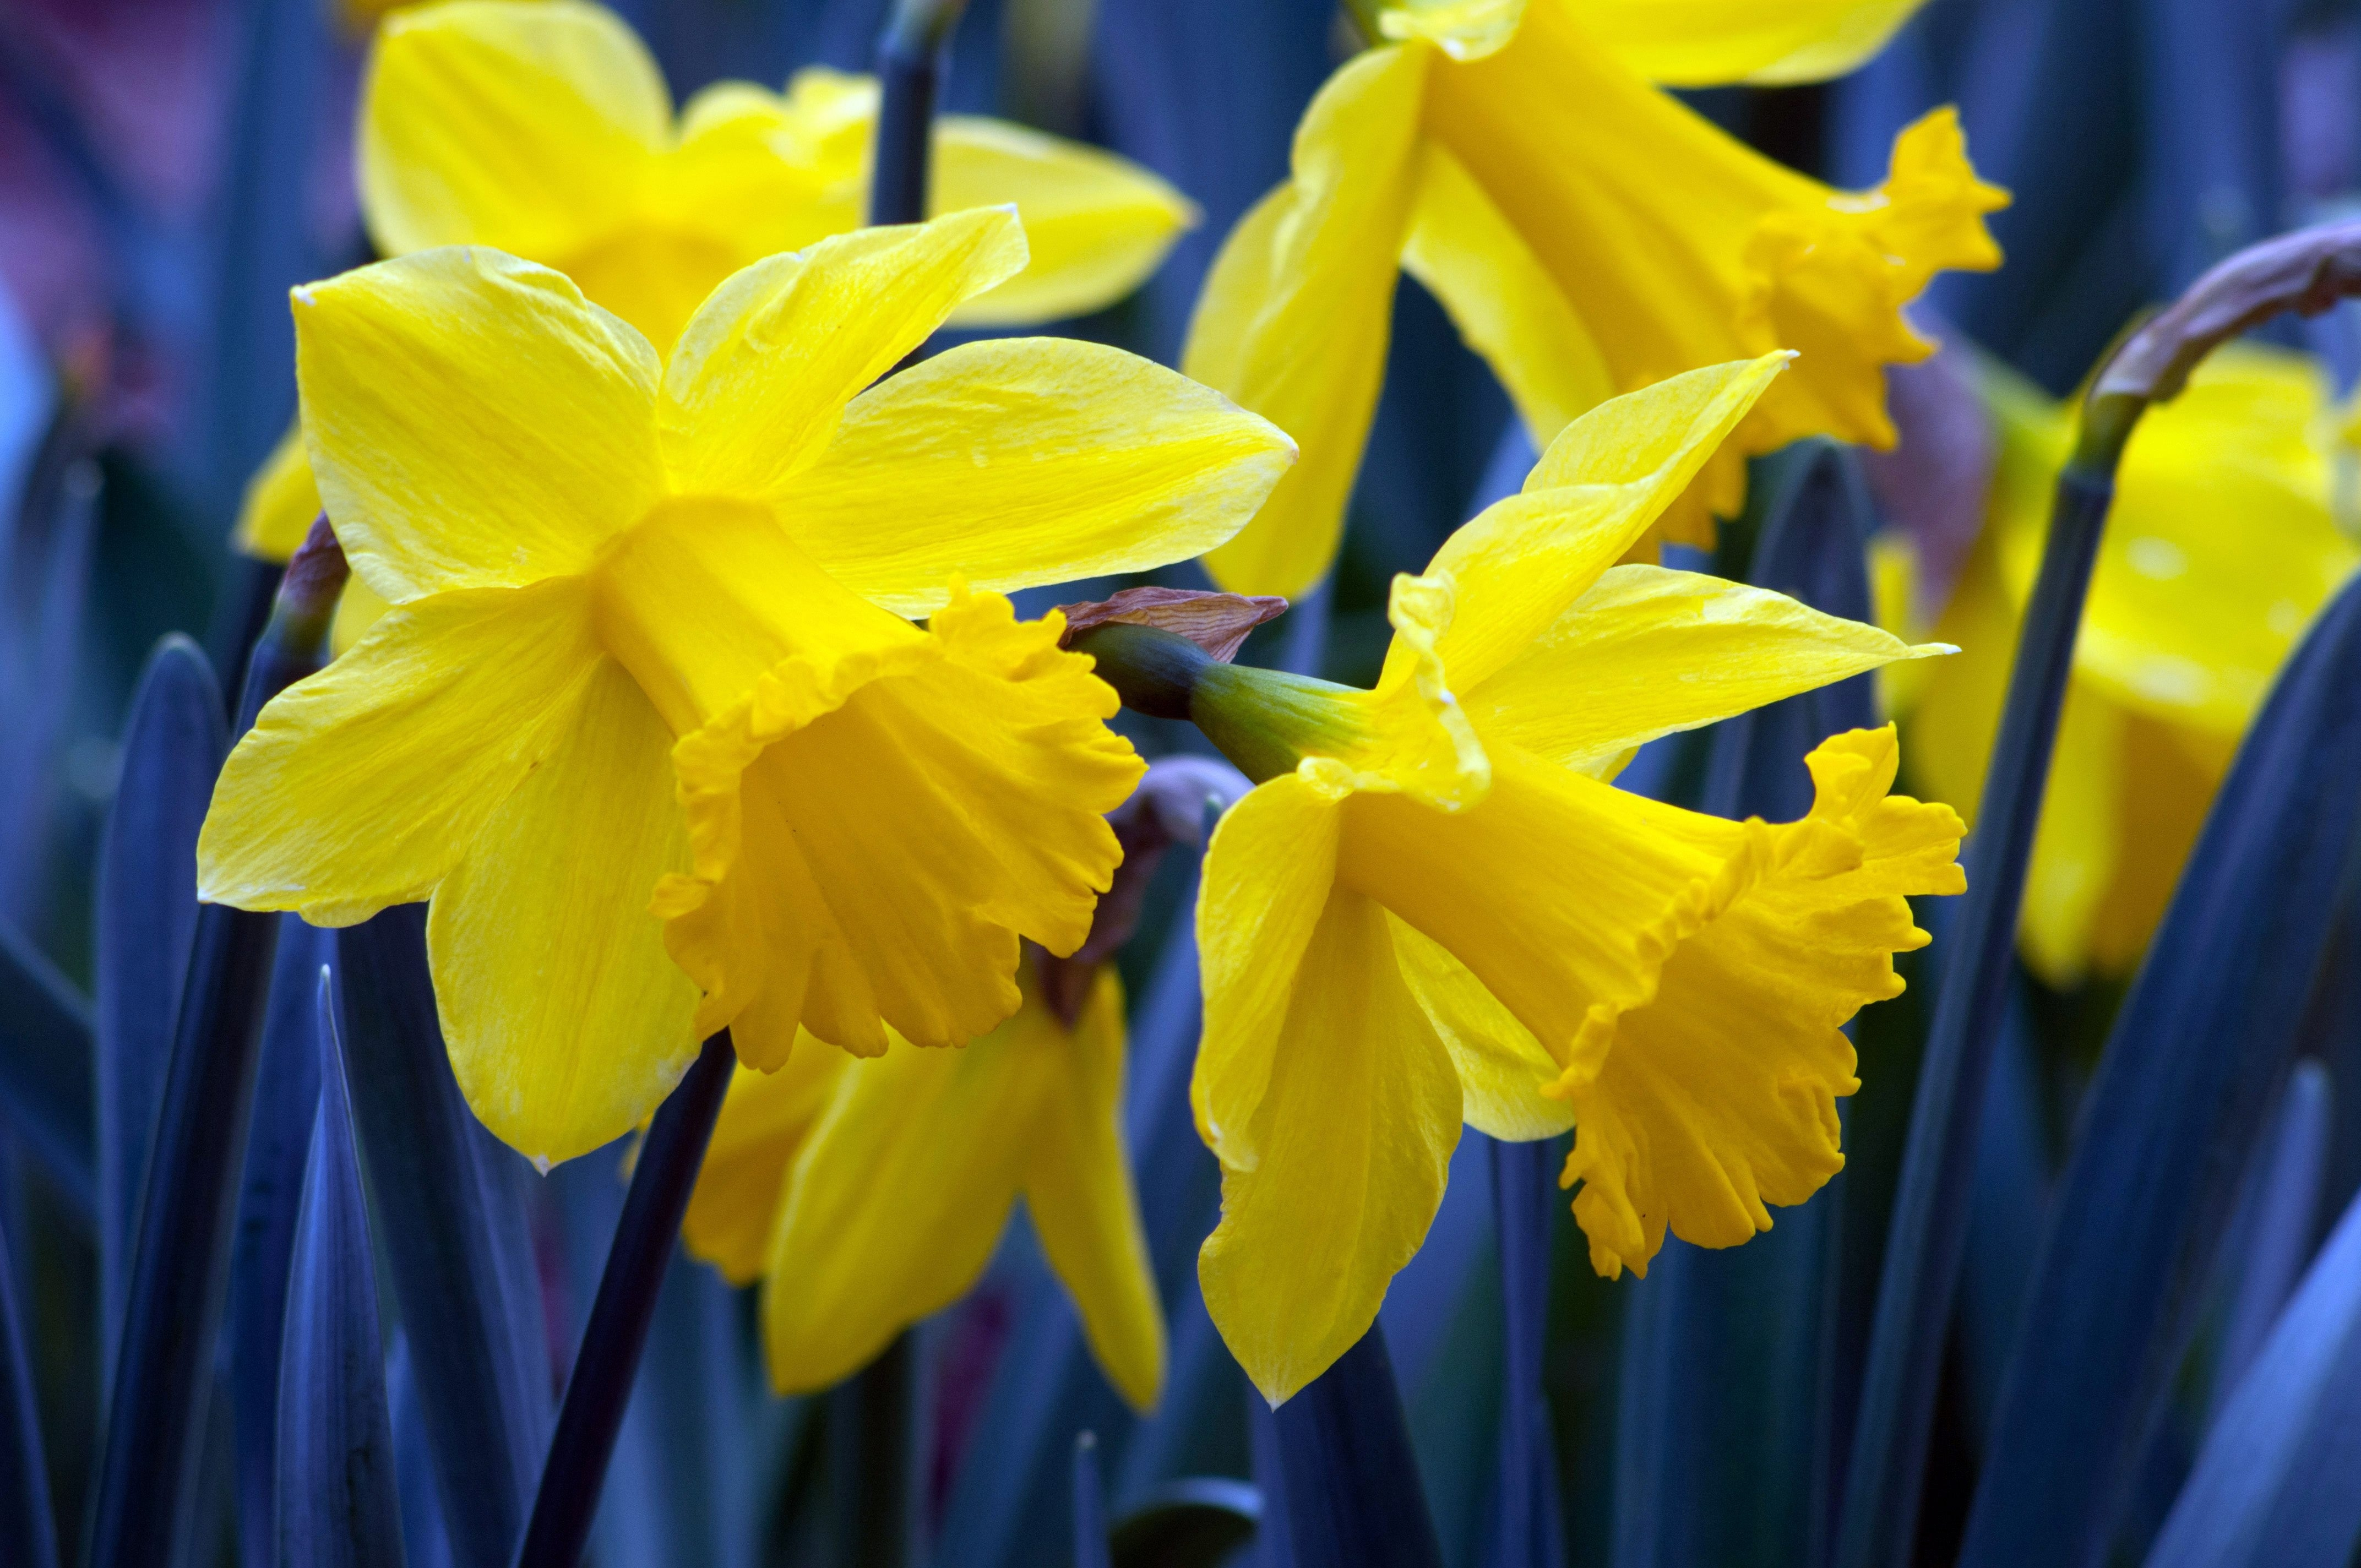 For a colorful spring garden nows the time to plant bulbs the narcissus golden harvest is an old timer nearly 100 years old izmirmasajfo Images